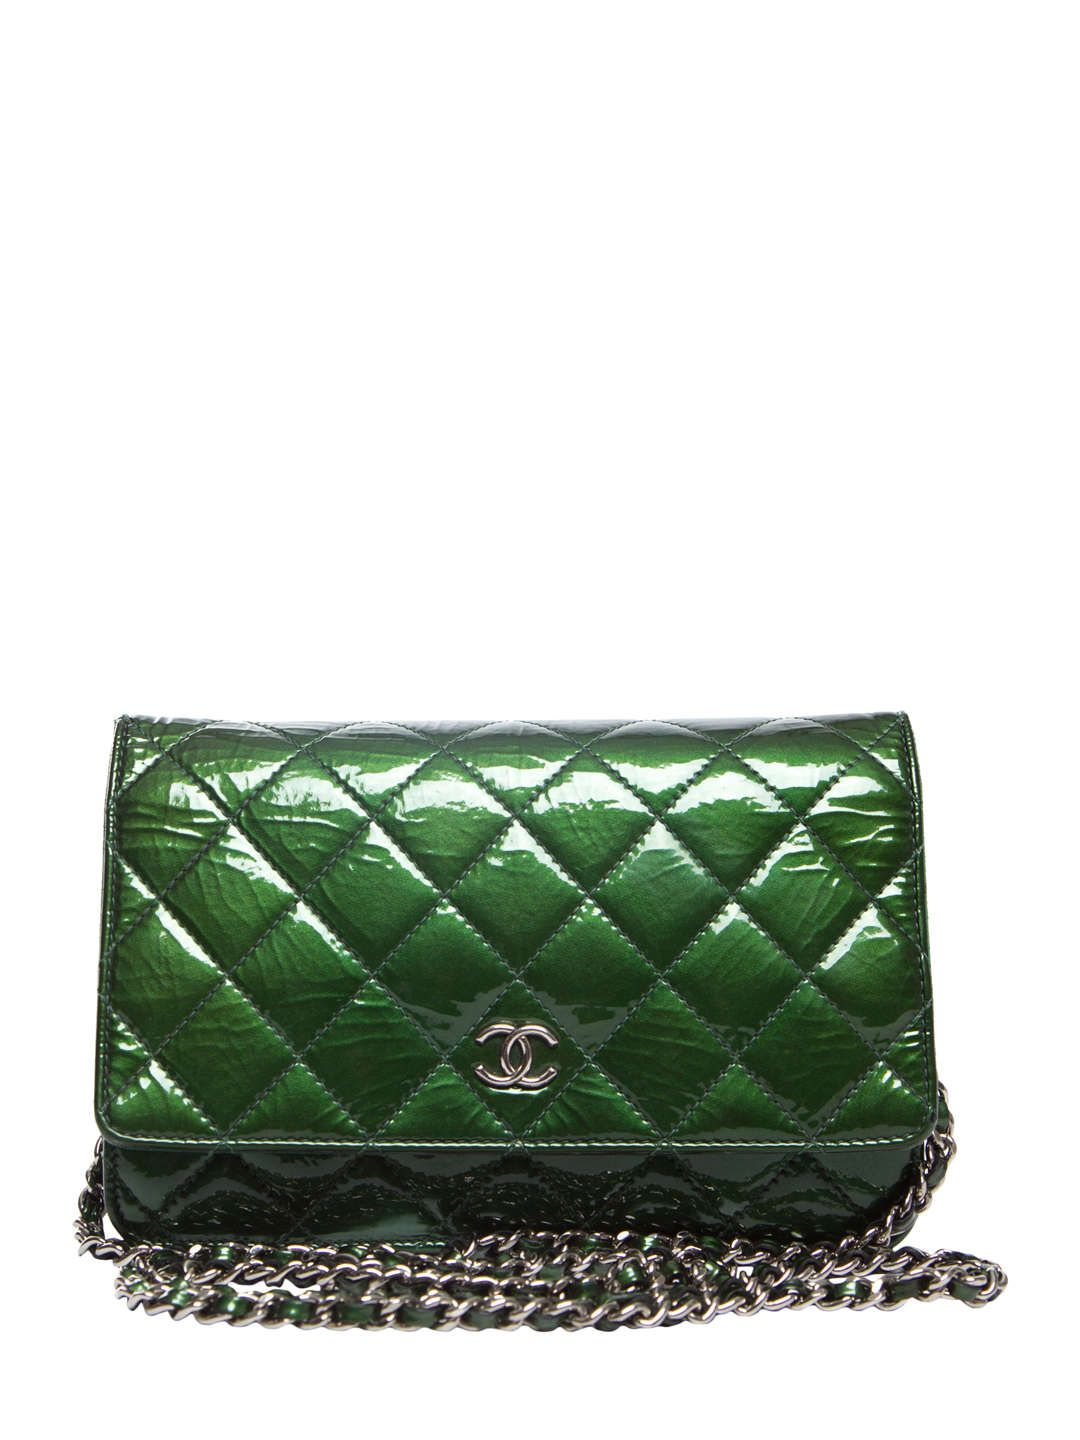 1f163392dd5939 Chanel | Green Patent Leather Wallet on a Chain) | // Chanel ...